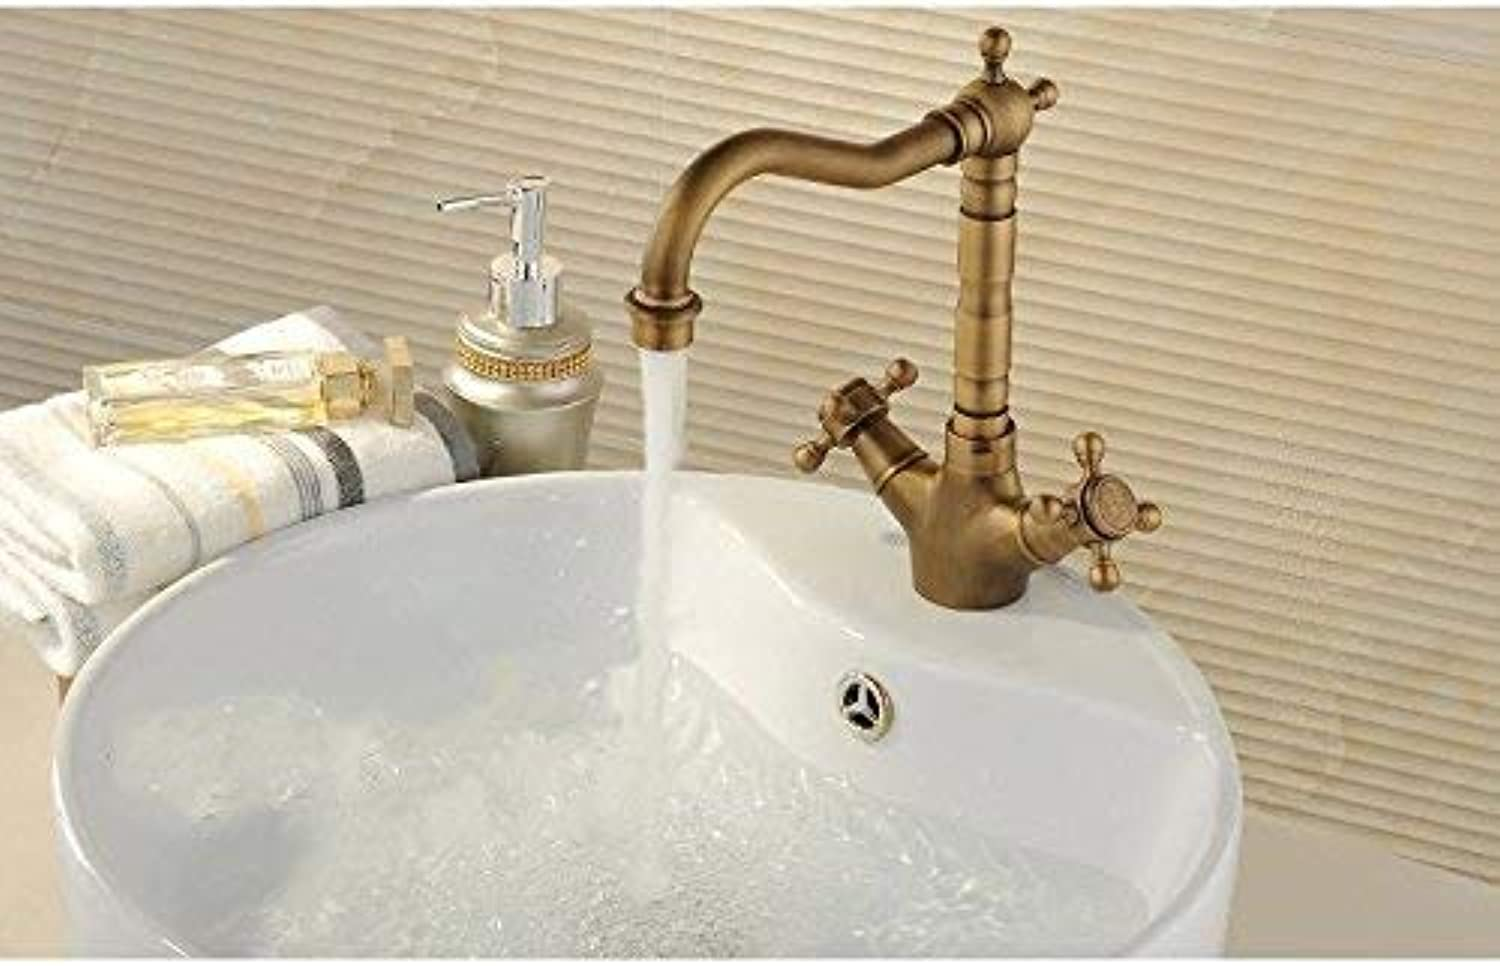 FERZA home Sink Mixer Tap Bathroom Kitchen Basin Tap Leakproof Save Water Full Antique Copper Cold Water Slot